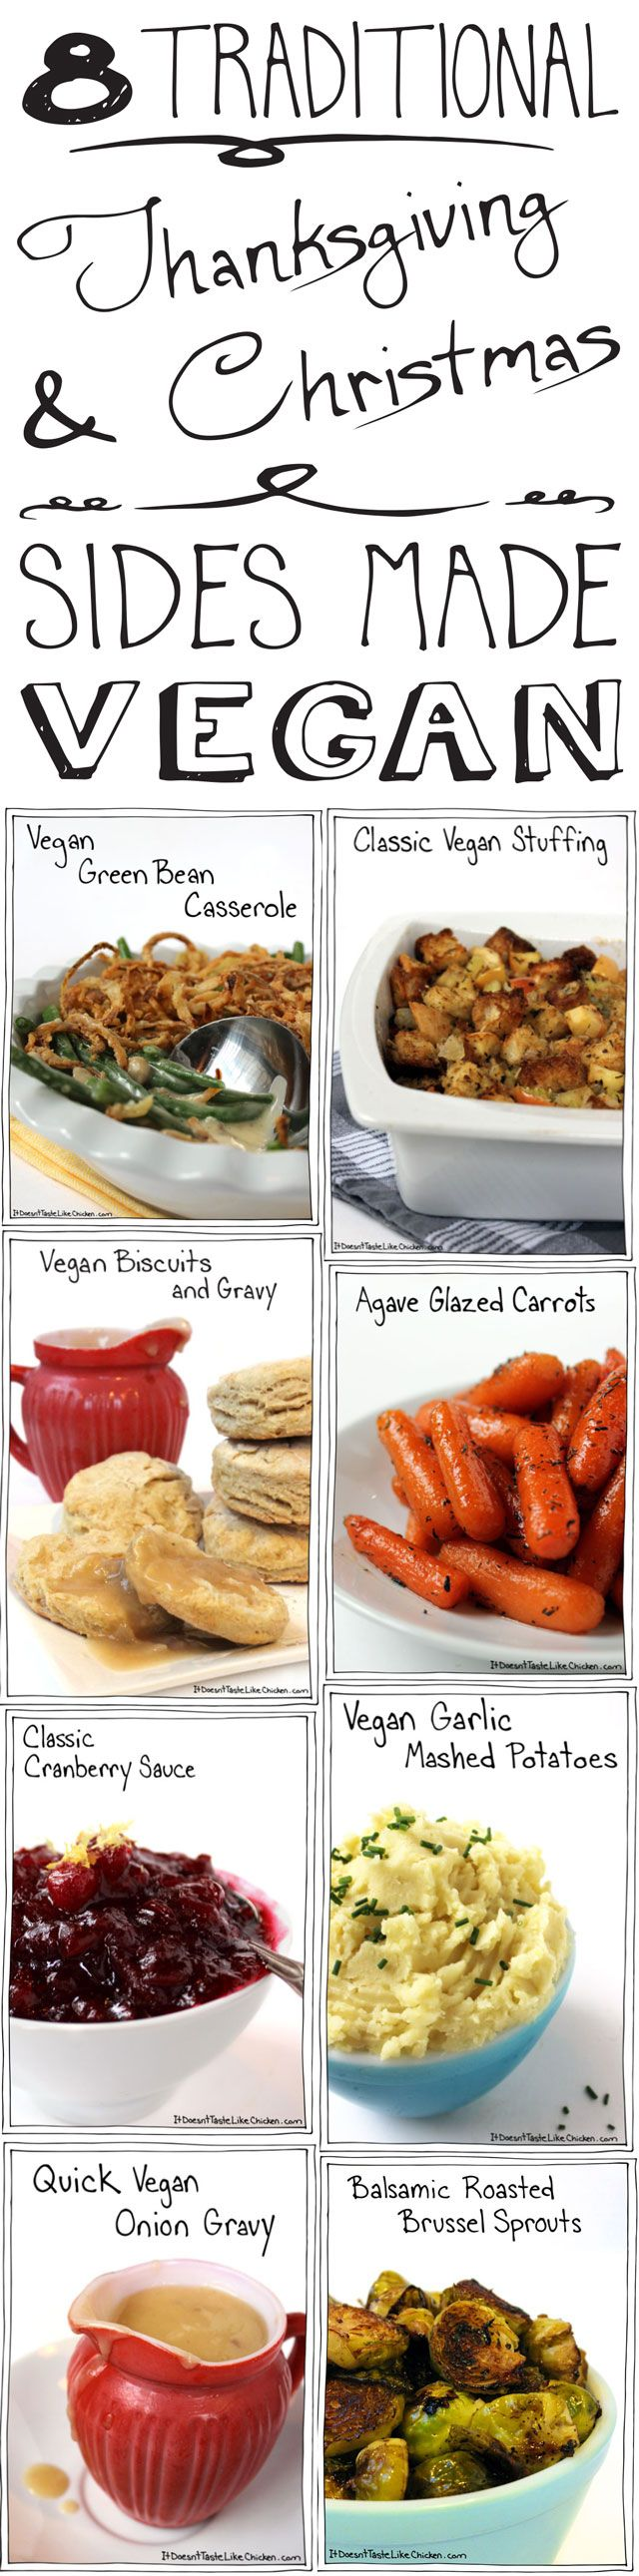 8 Traditional Thanksgiving and Christmas Sides Made Vegan